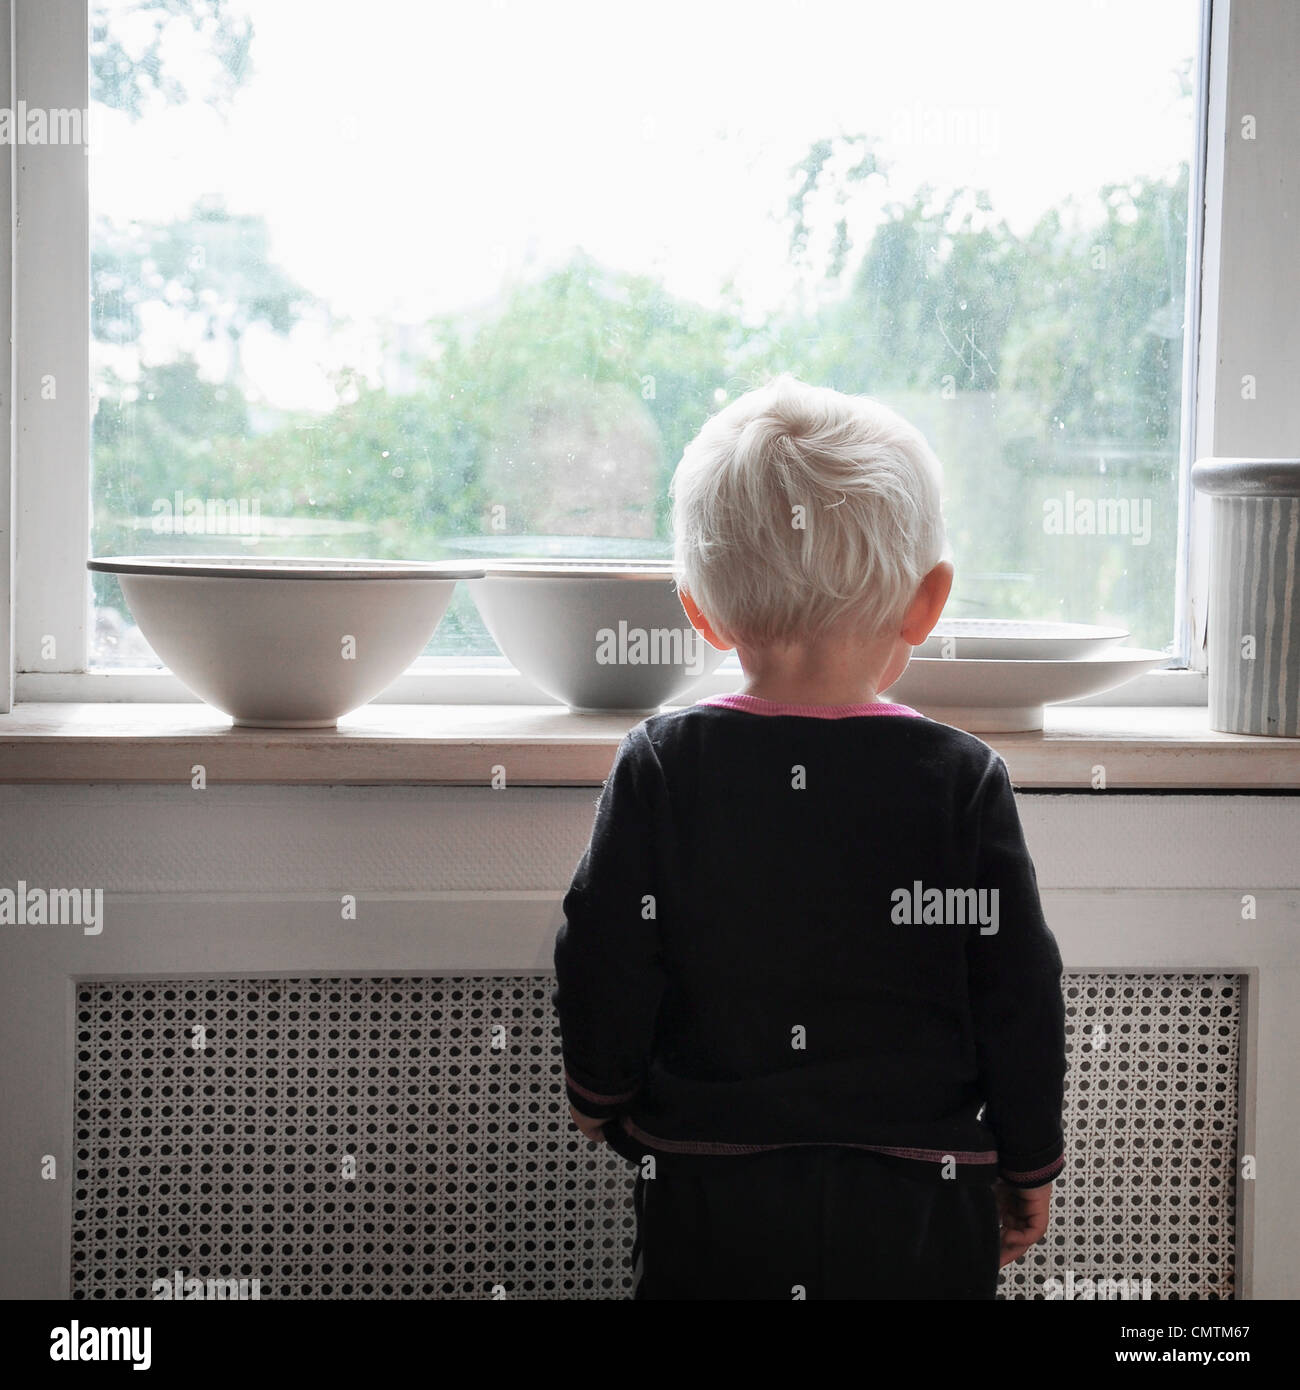 Small boy looking out through window - Stock Image